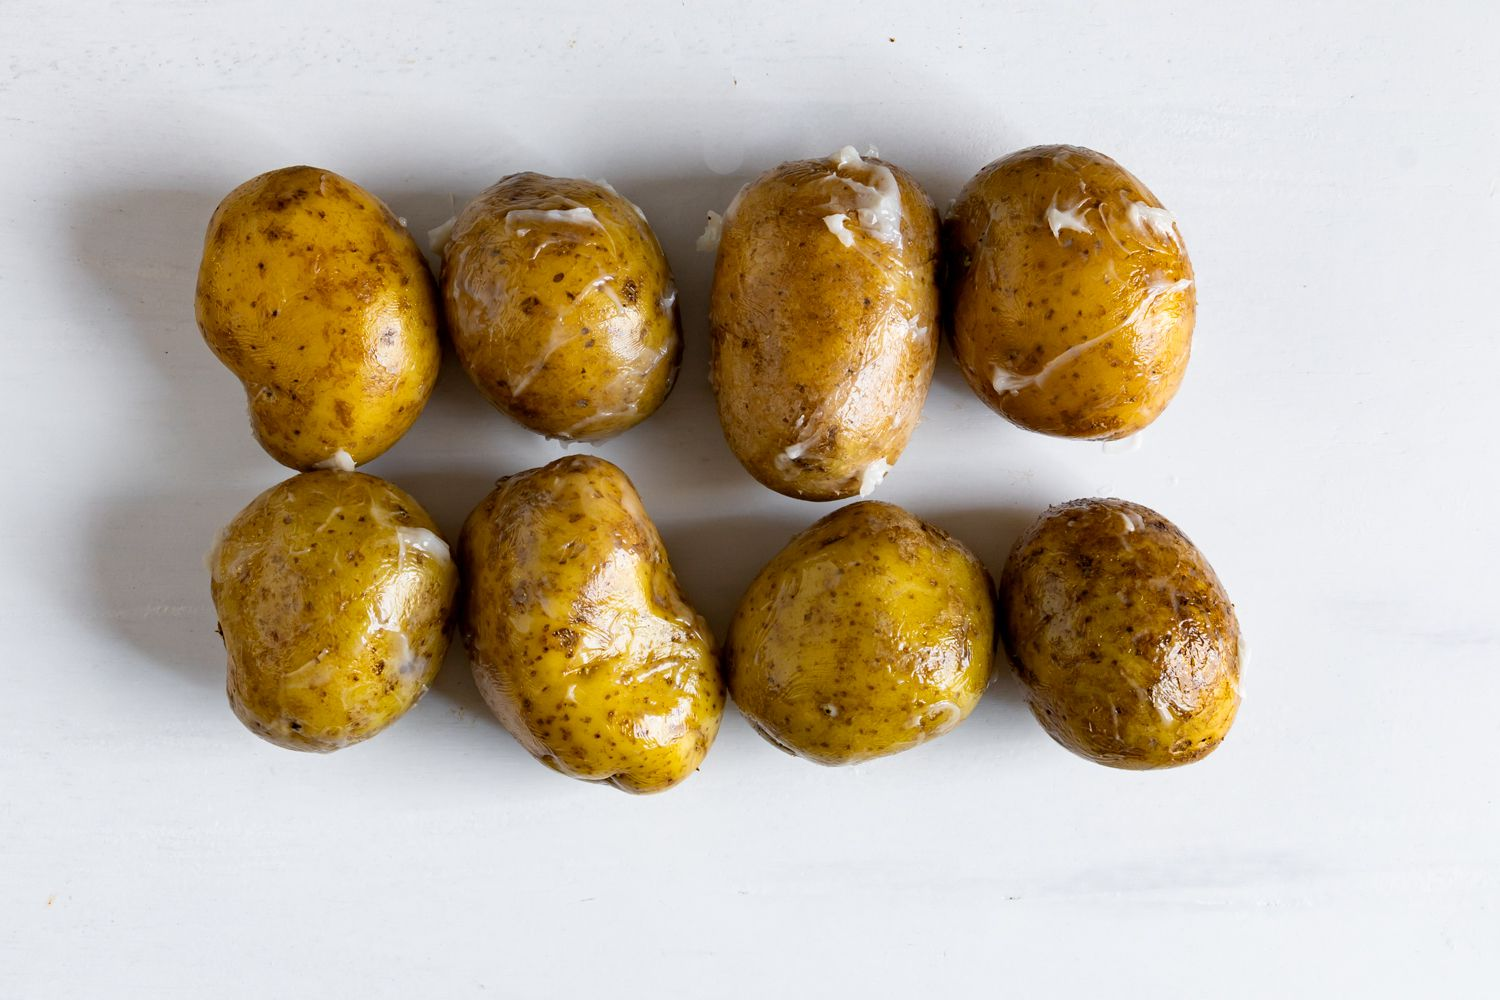 Potatoes covered with bacon grease